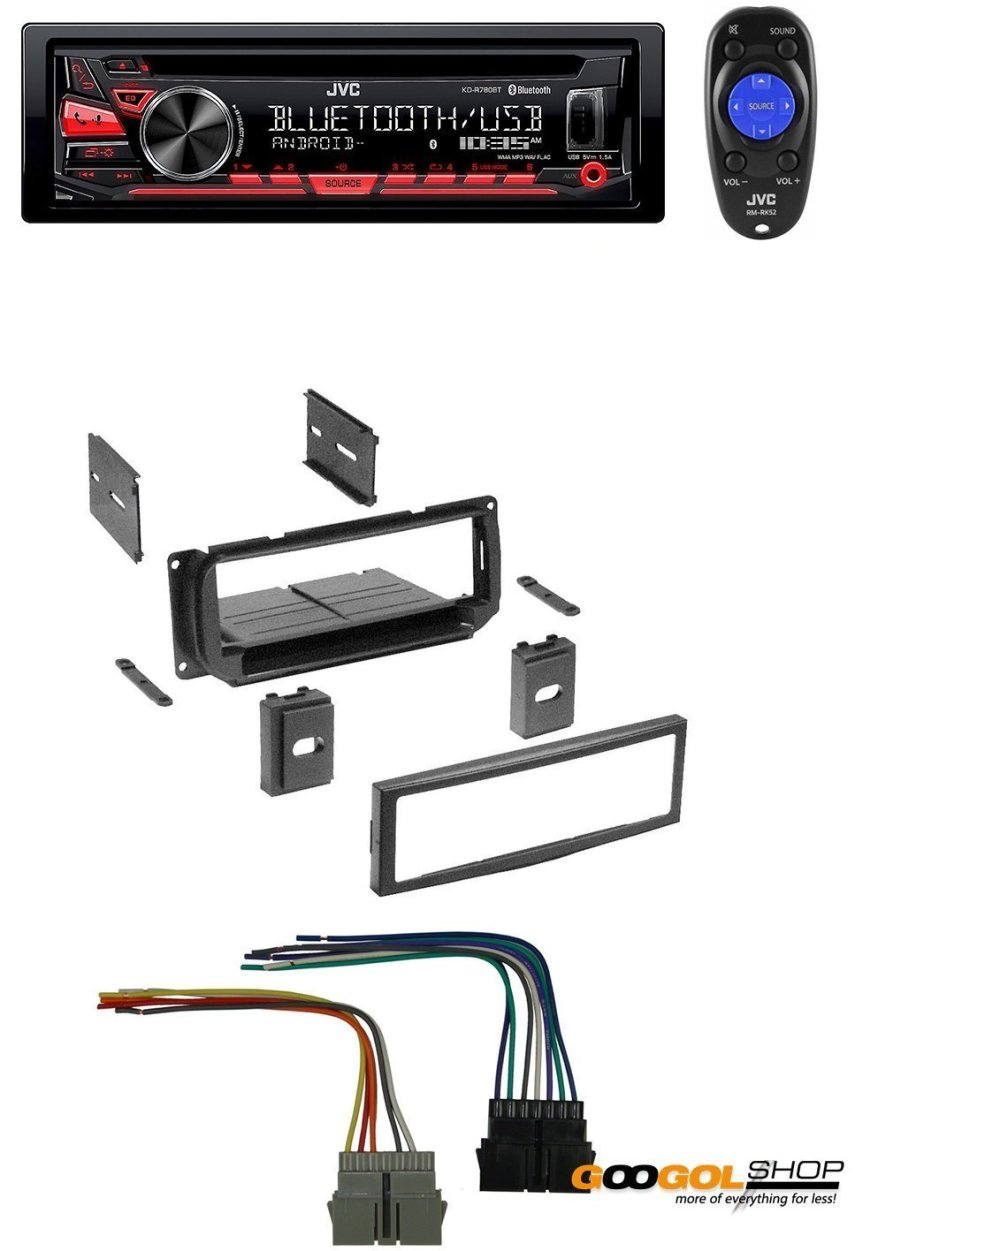 medium resolution of new car stereo radio kit dash installation mounting trim bezel w wiring harness and jvc kd r780bt 1 din cd receiver with bluetooth and jvc app remote